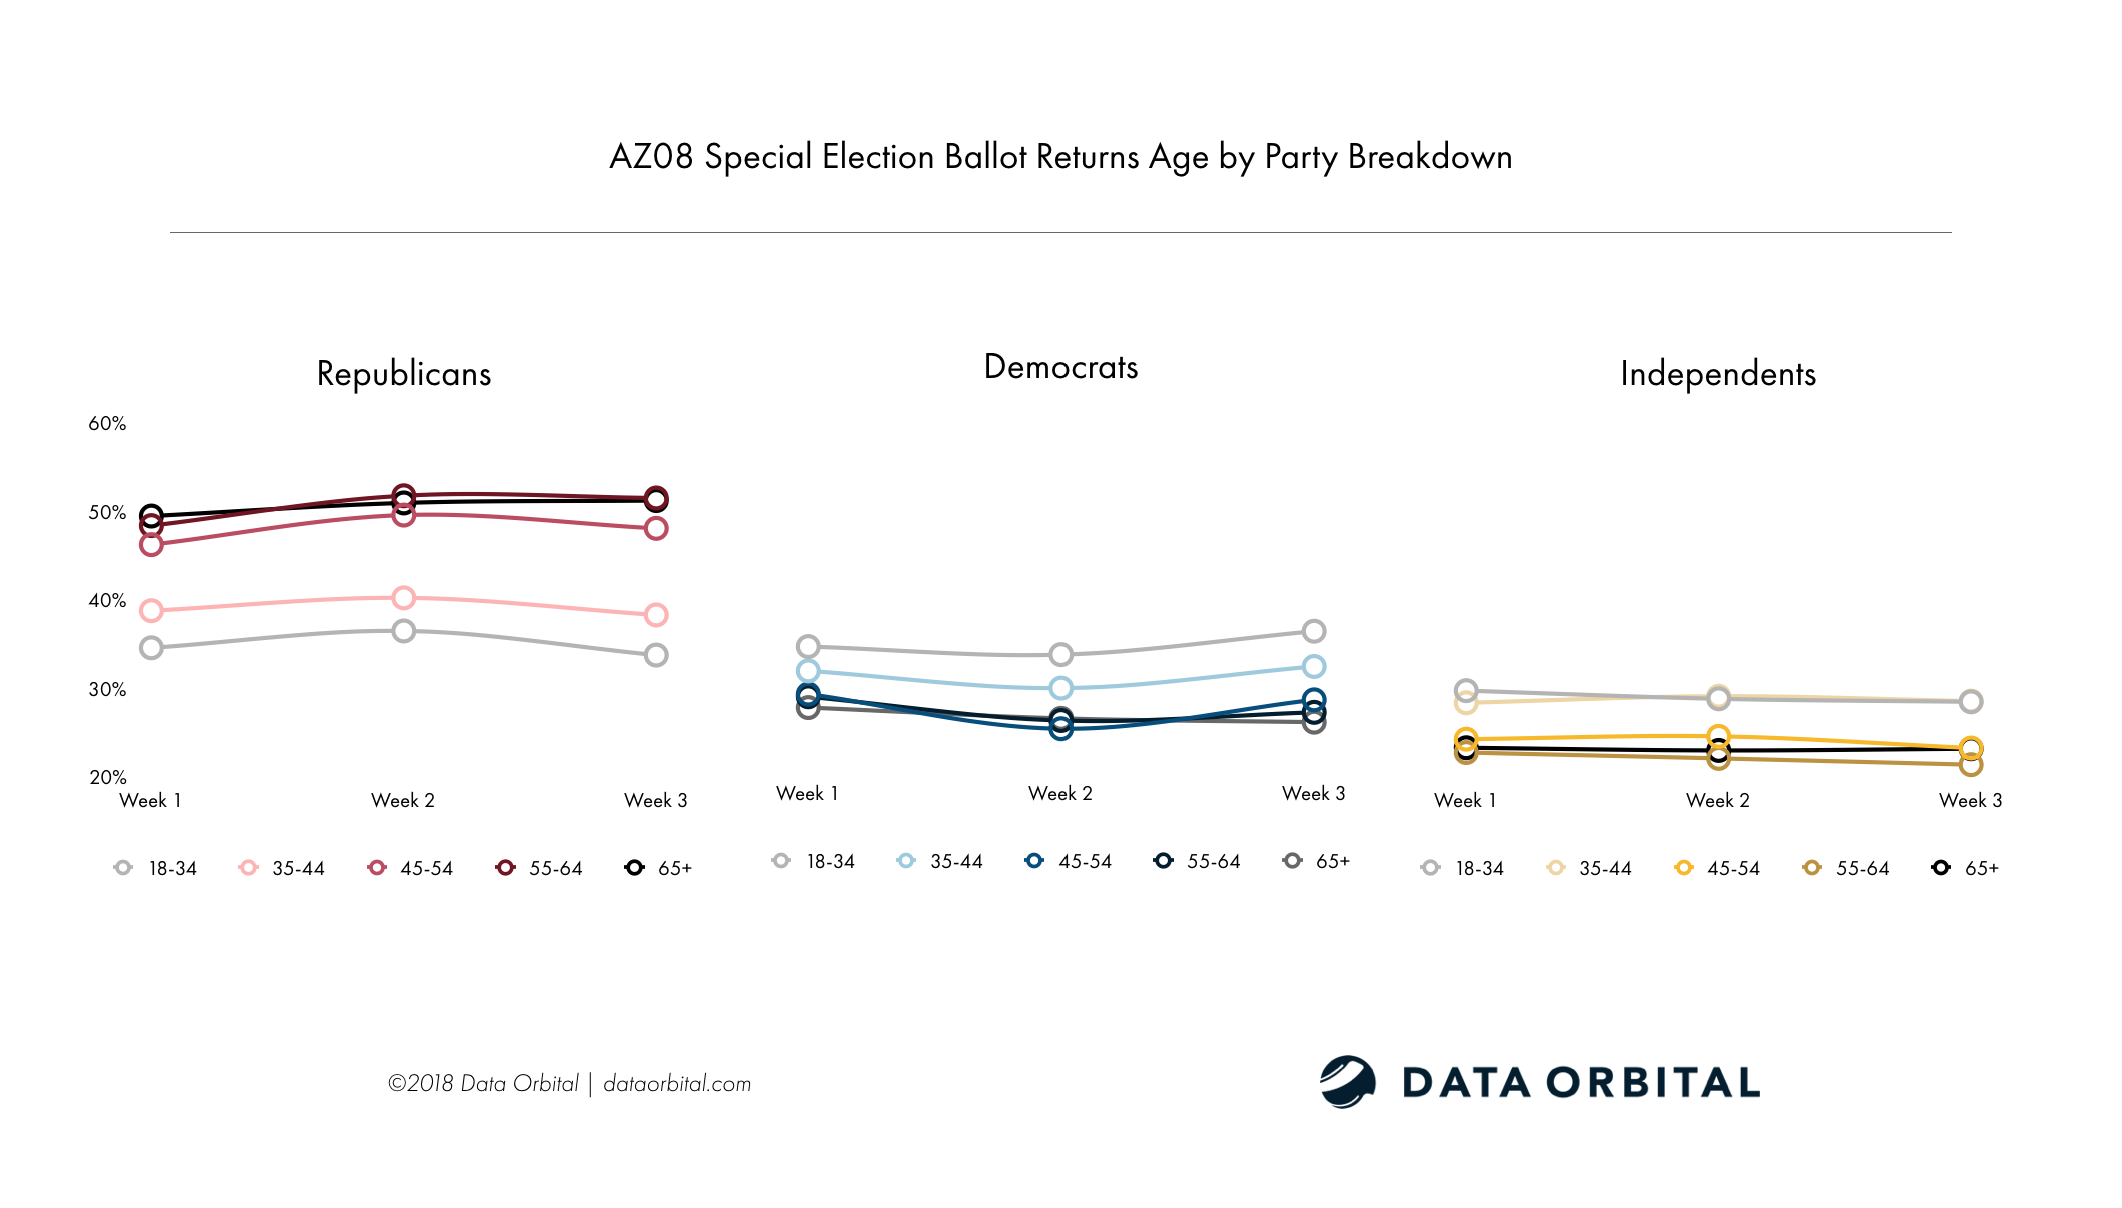 AZ08 Special Election Ballot Returns Week 3 Wrap Up and Analysis Age by Party